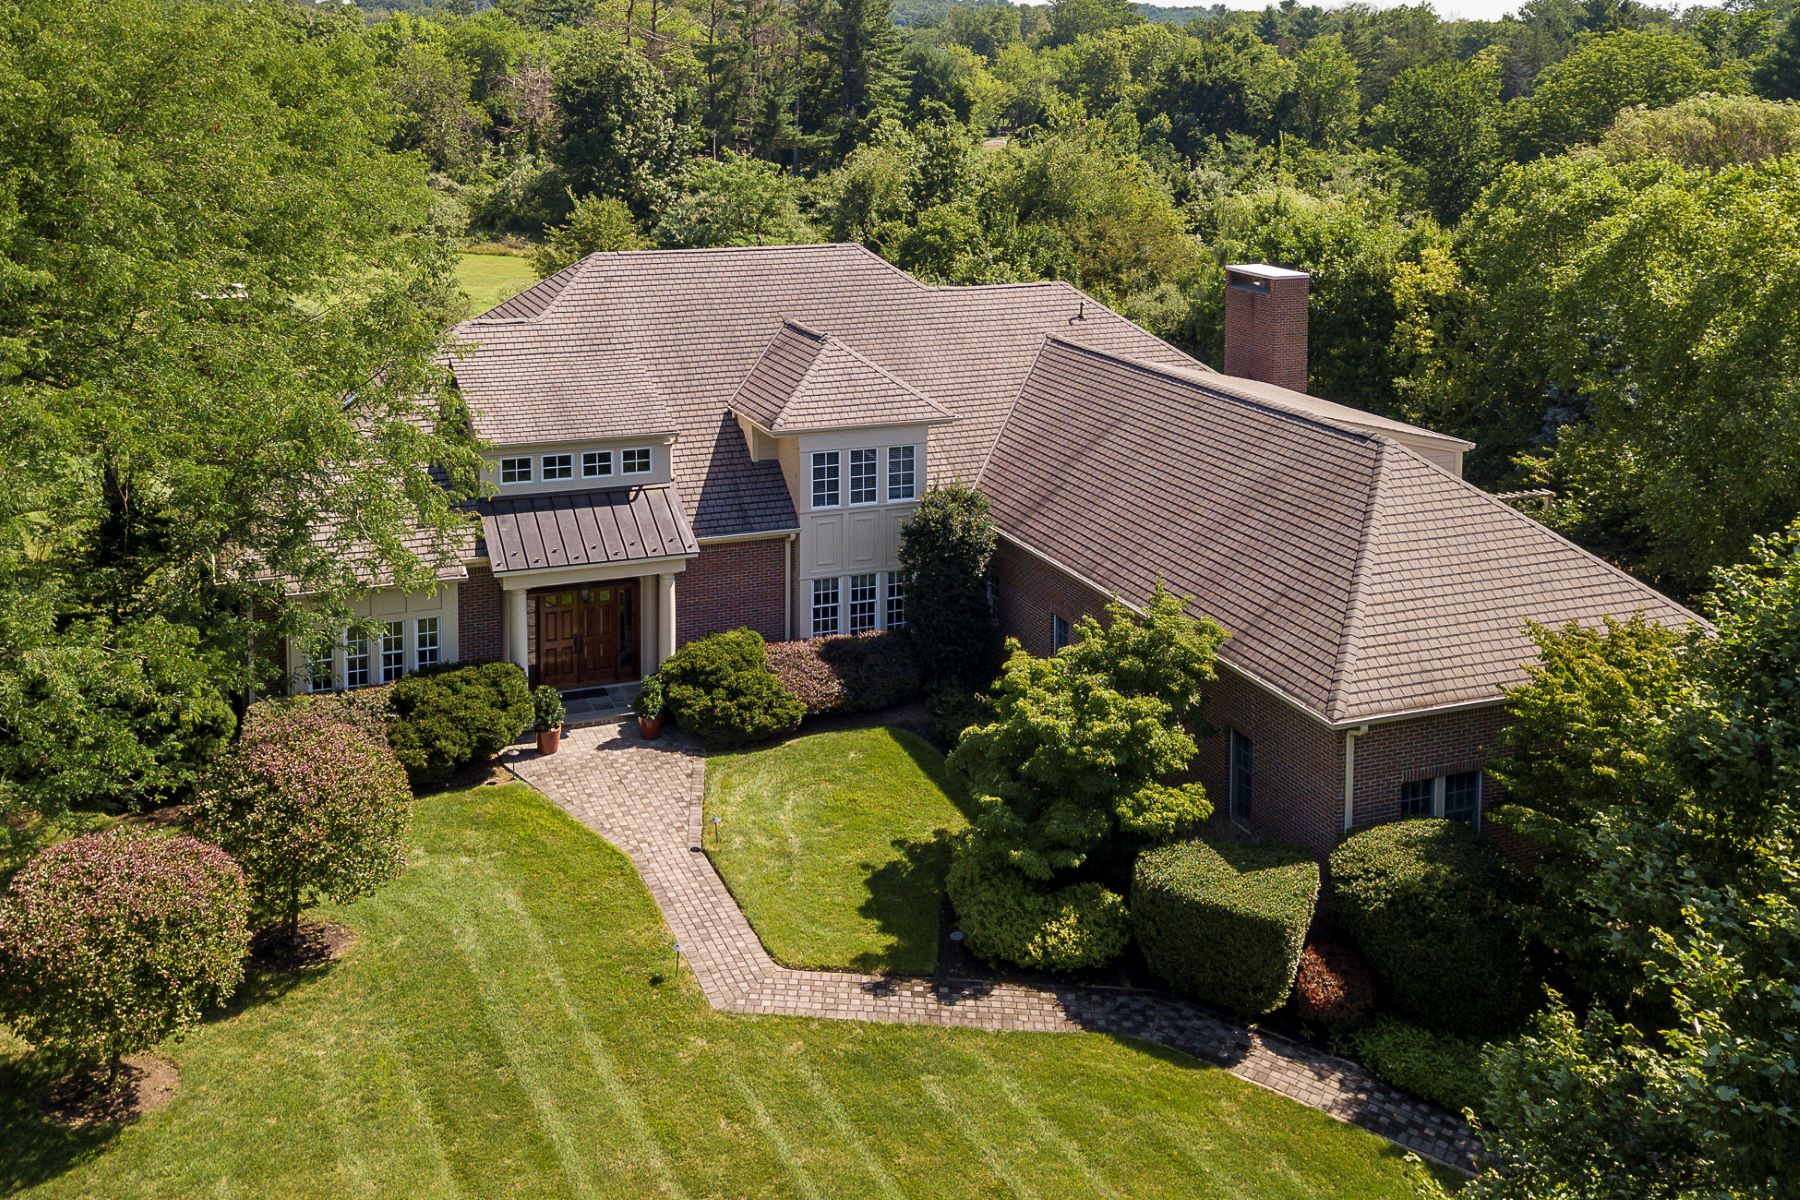 Property للـ Sale في Peaceful Views, Plentiful Space, Perfect Locale 51 Grasmere Way, Princeton, New Jersey 08540 United States